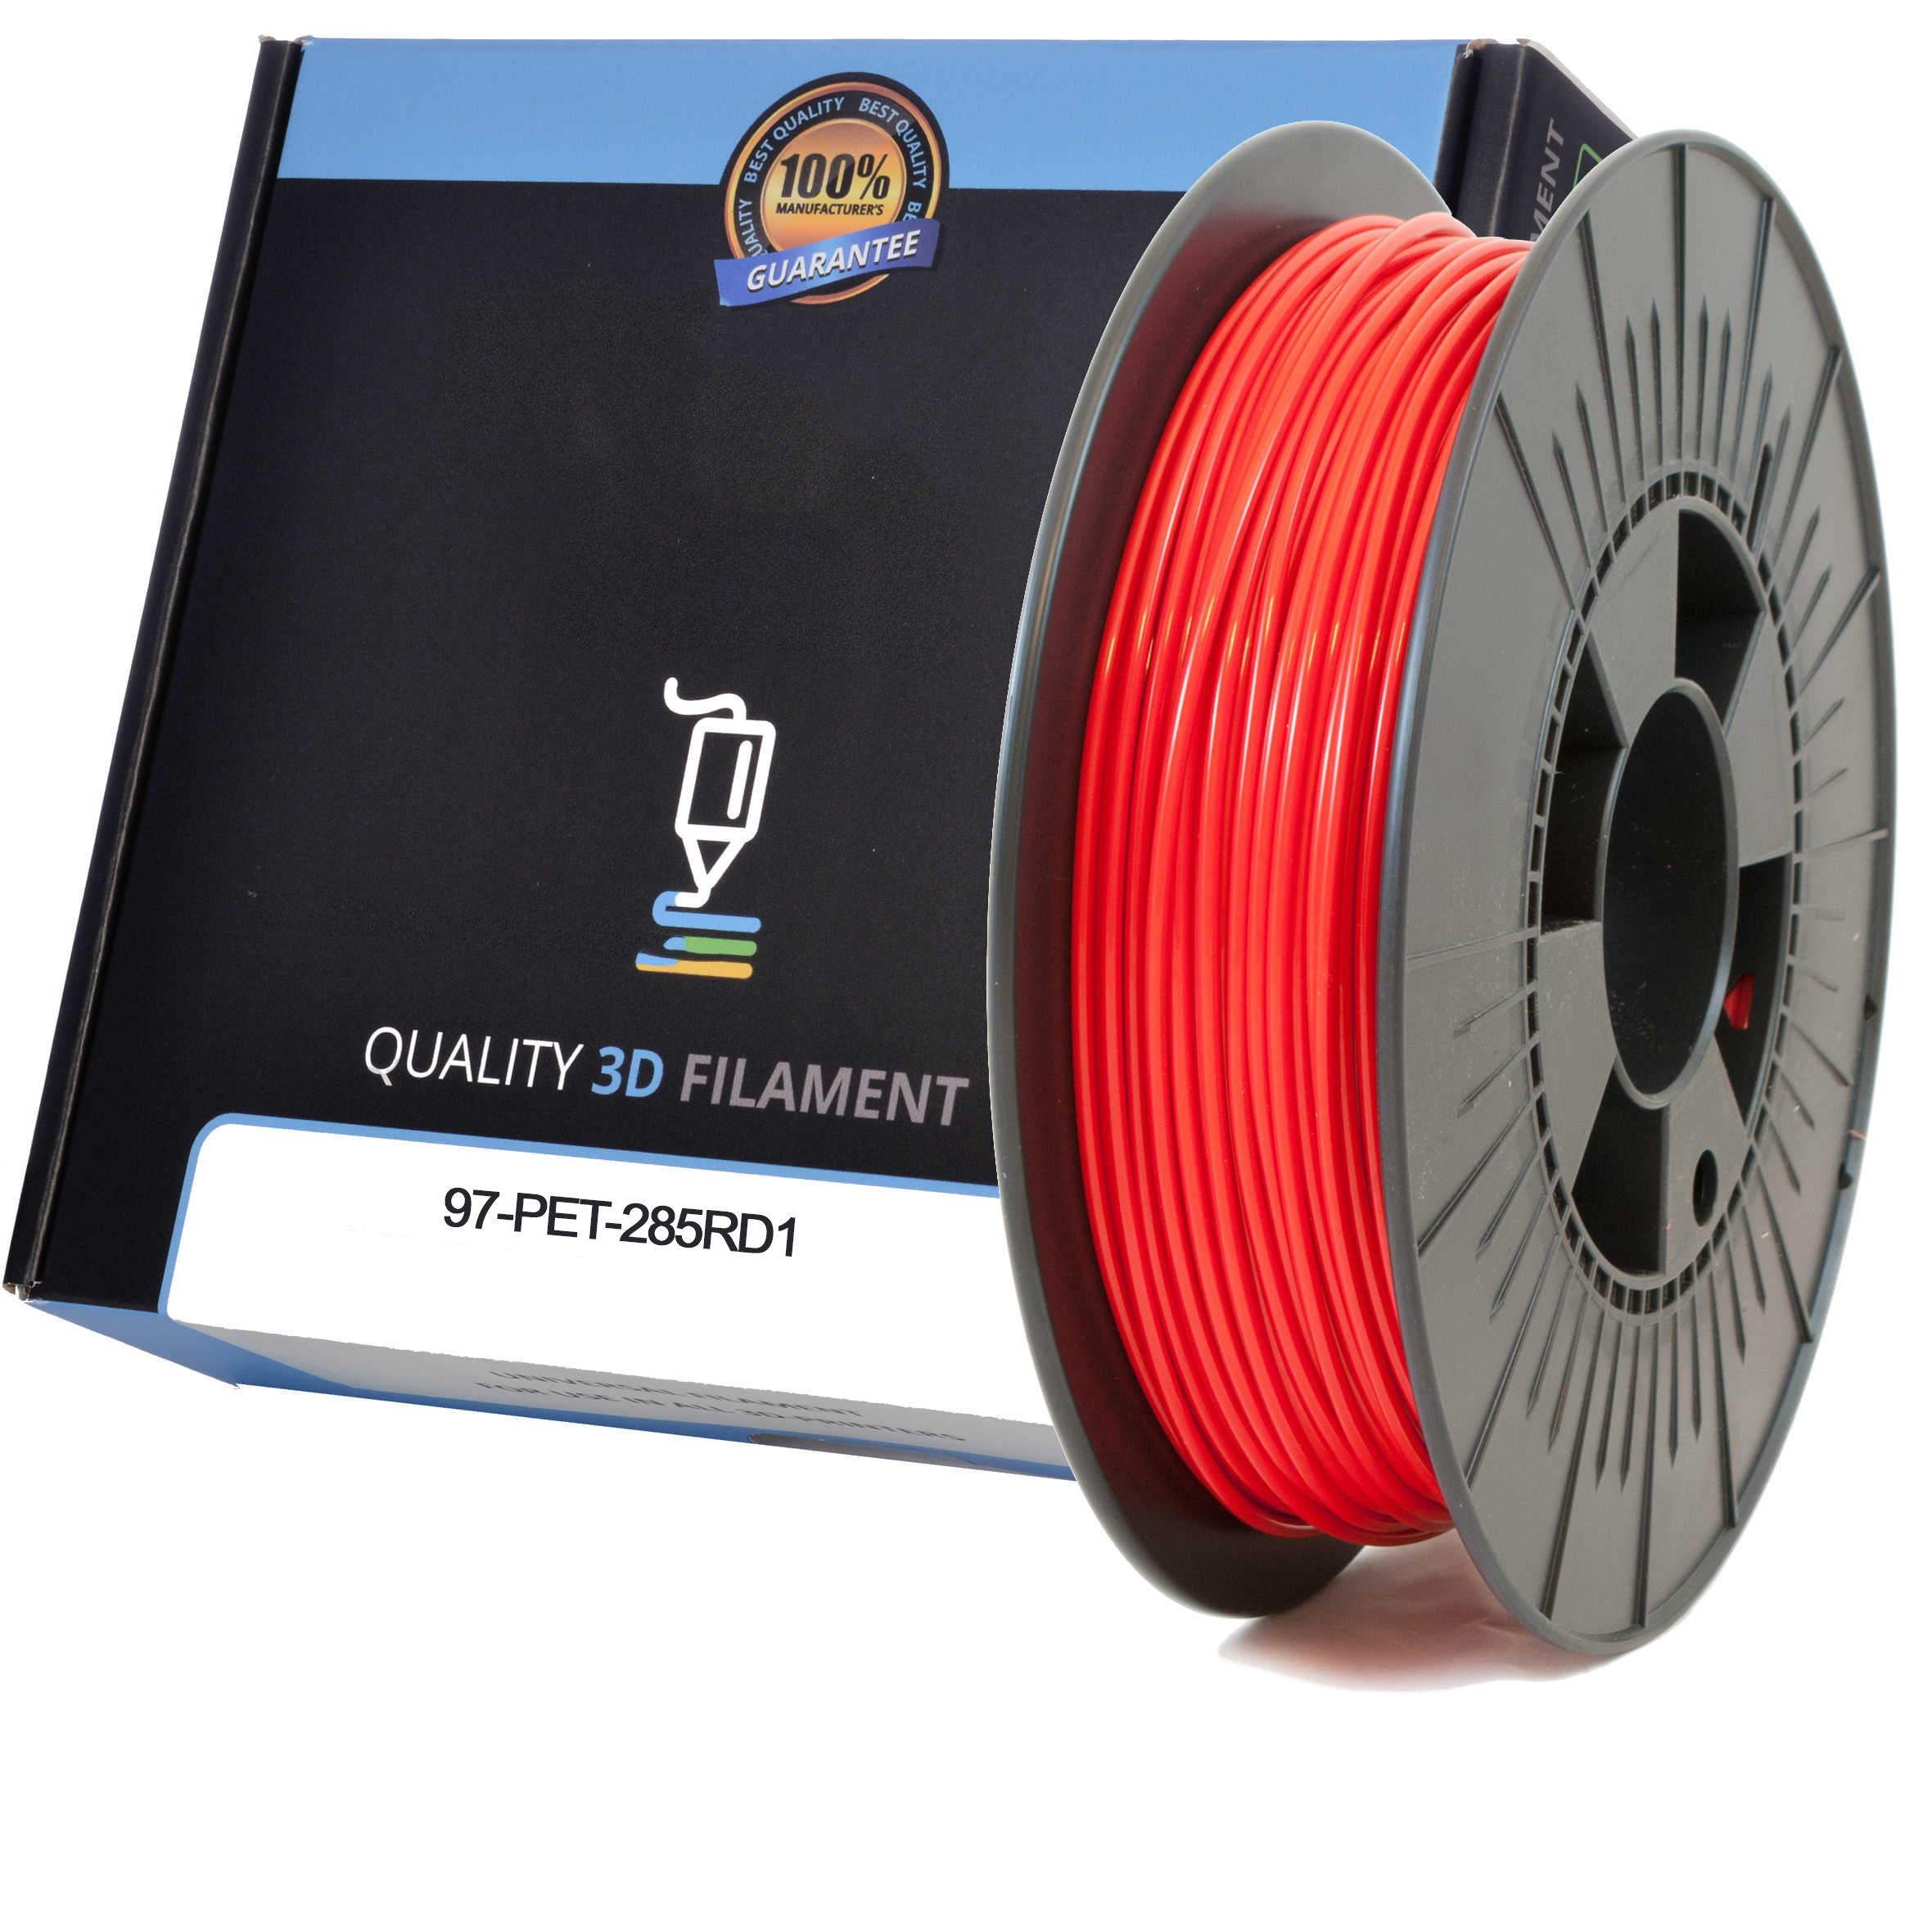 Premium Compatible PETG 2.85mm Red 1kg 3D Filament (97-PET-285RD1)